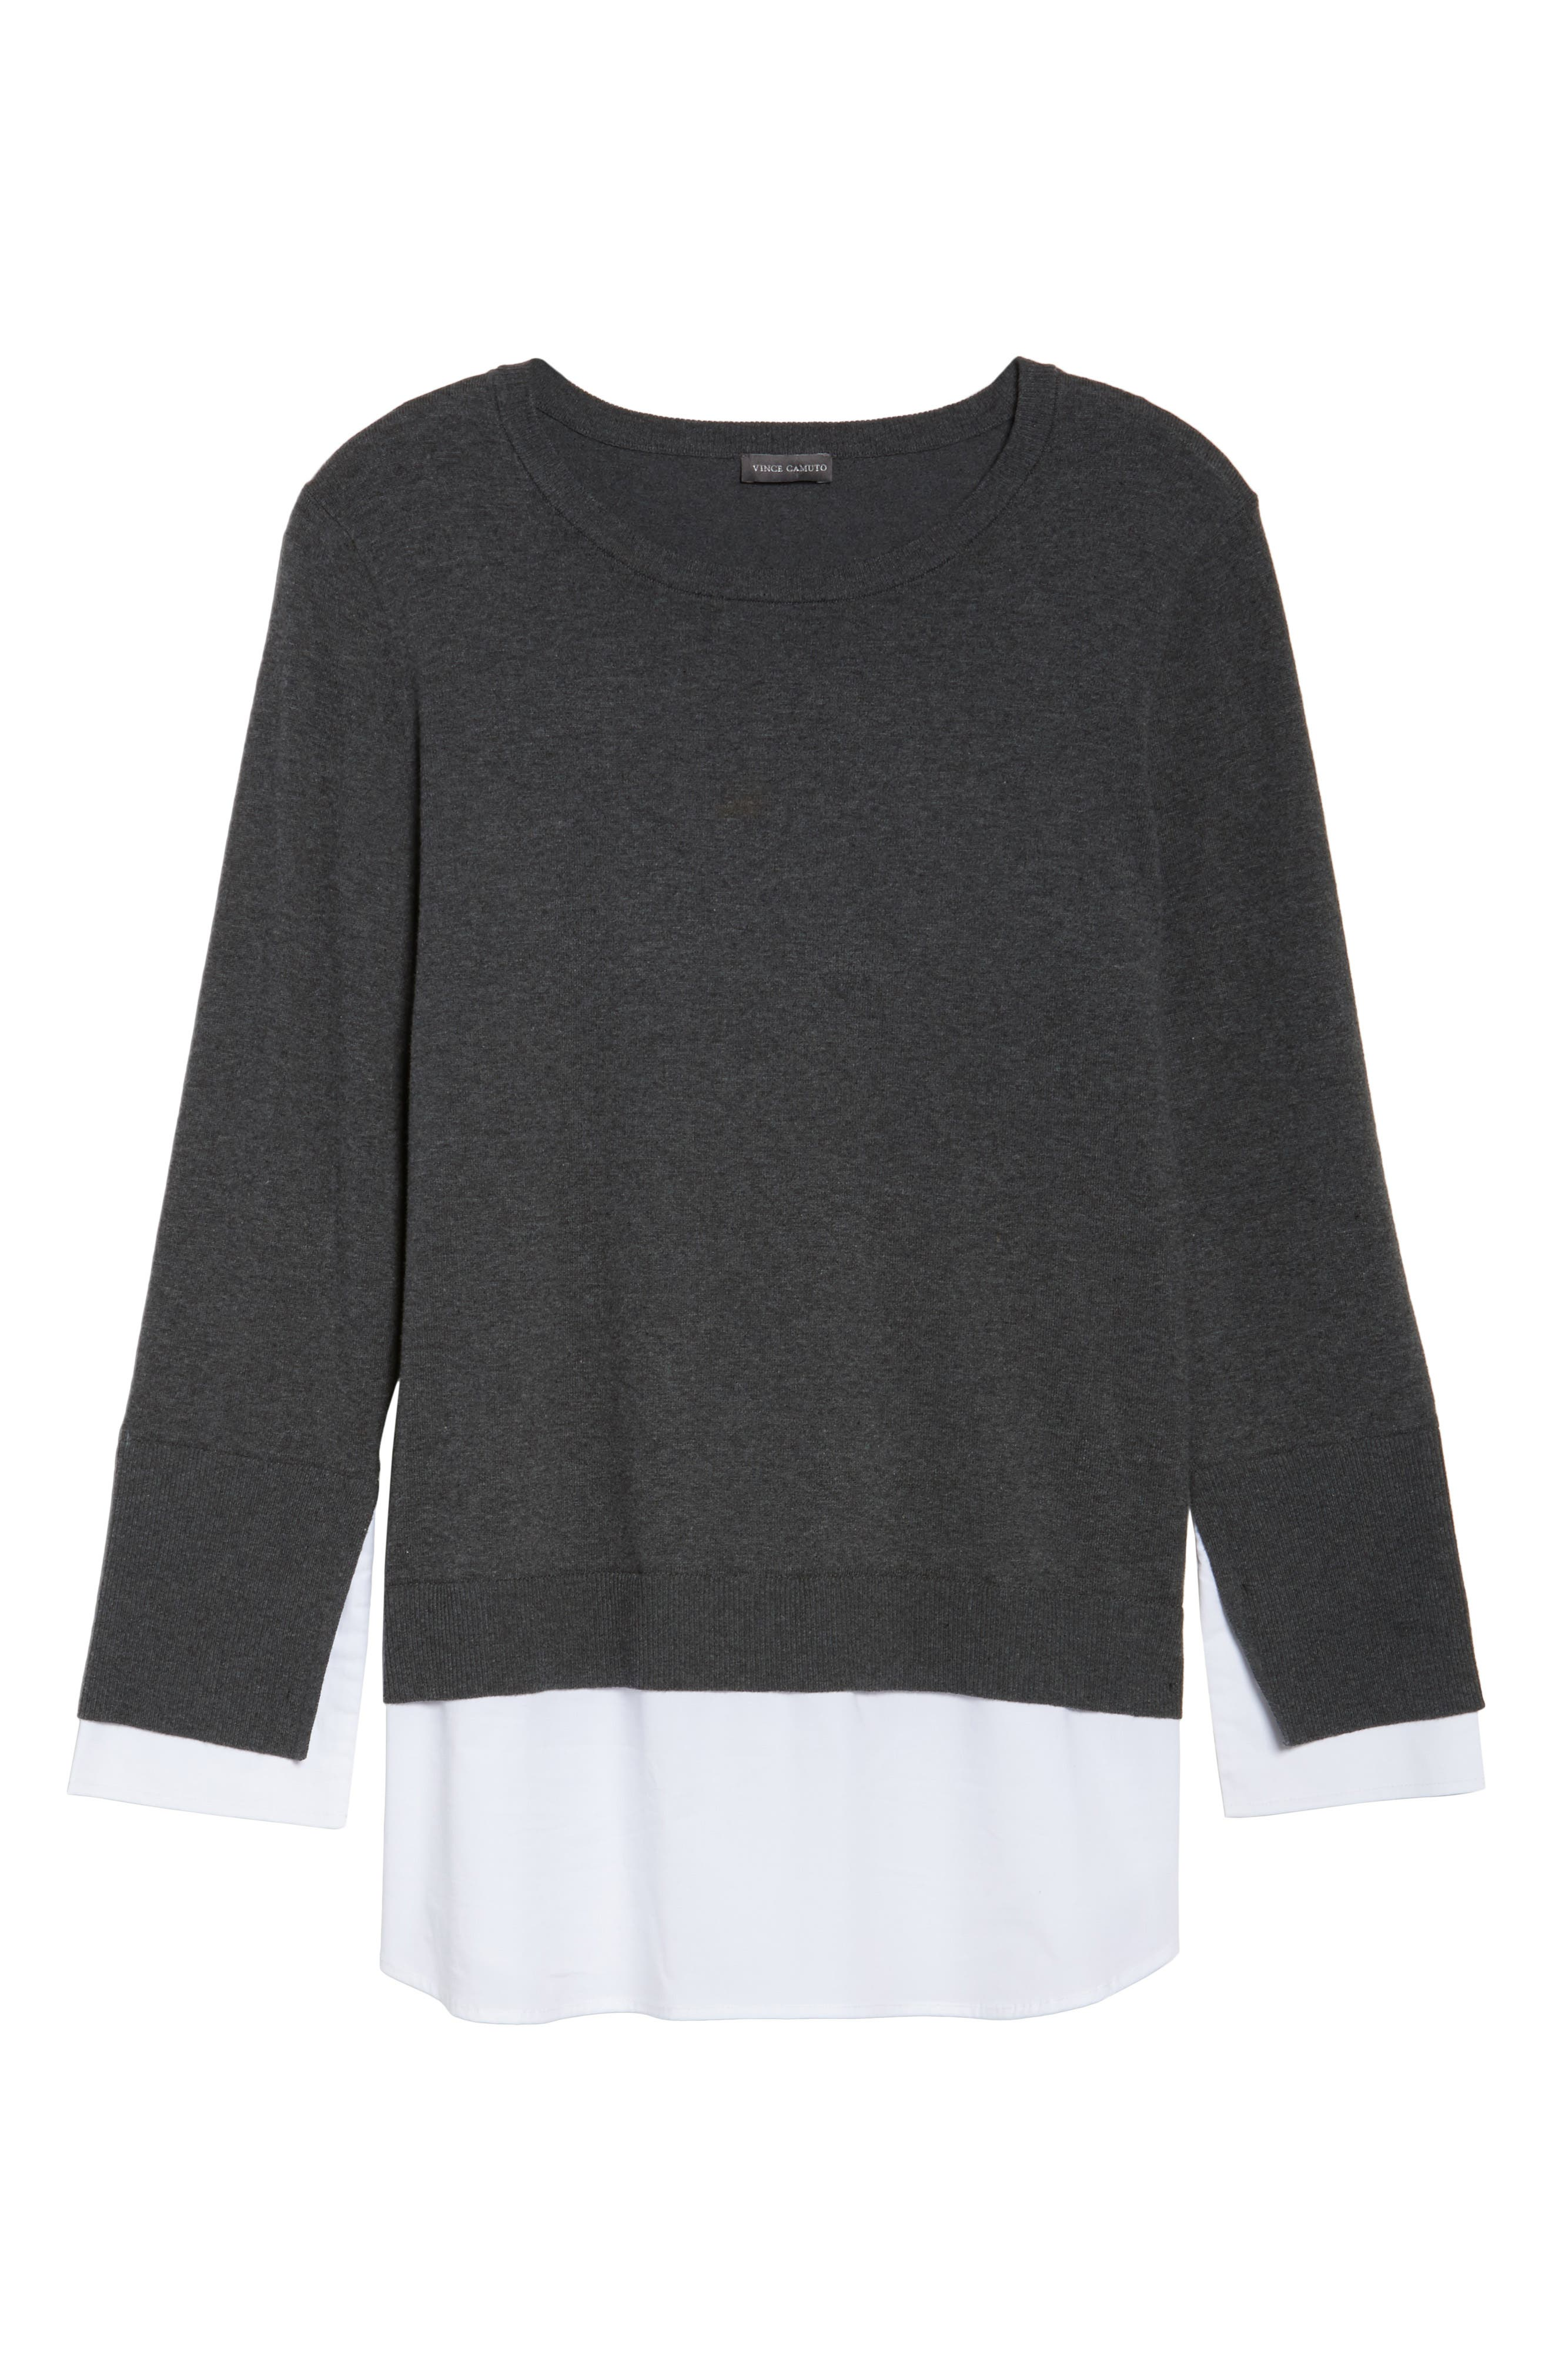 Layered Look Sweater,                             Alternate thumbnail 6, color,                             023